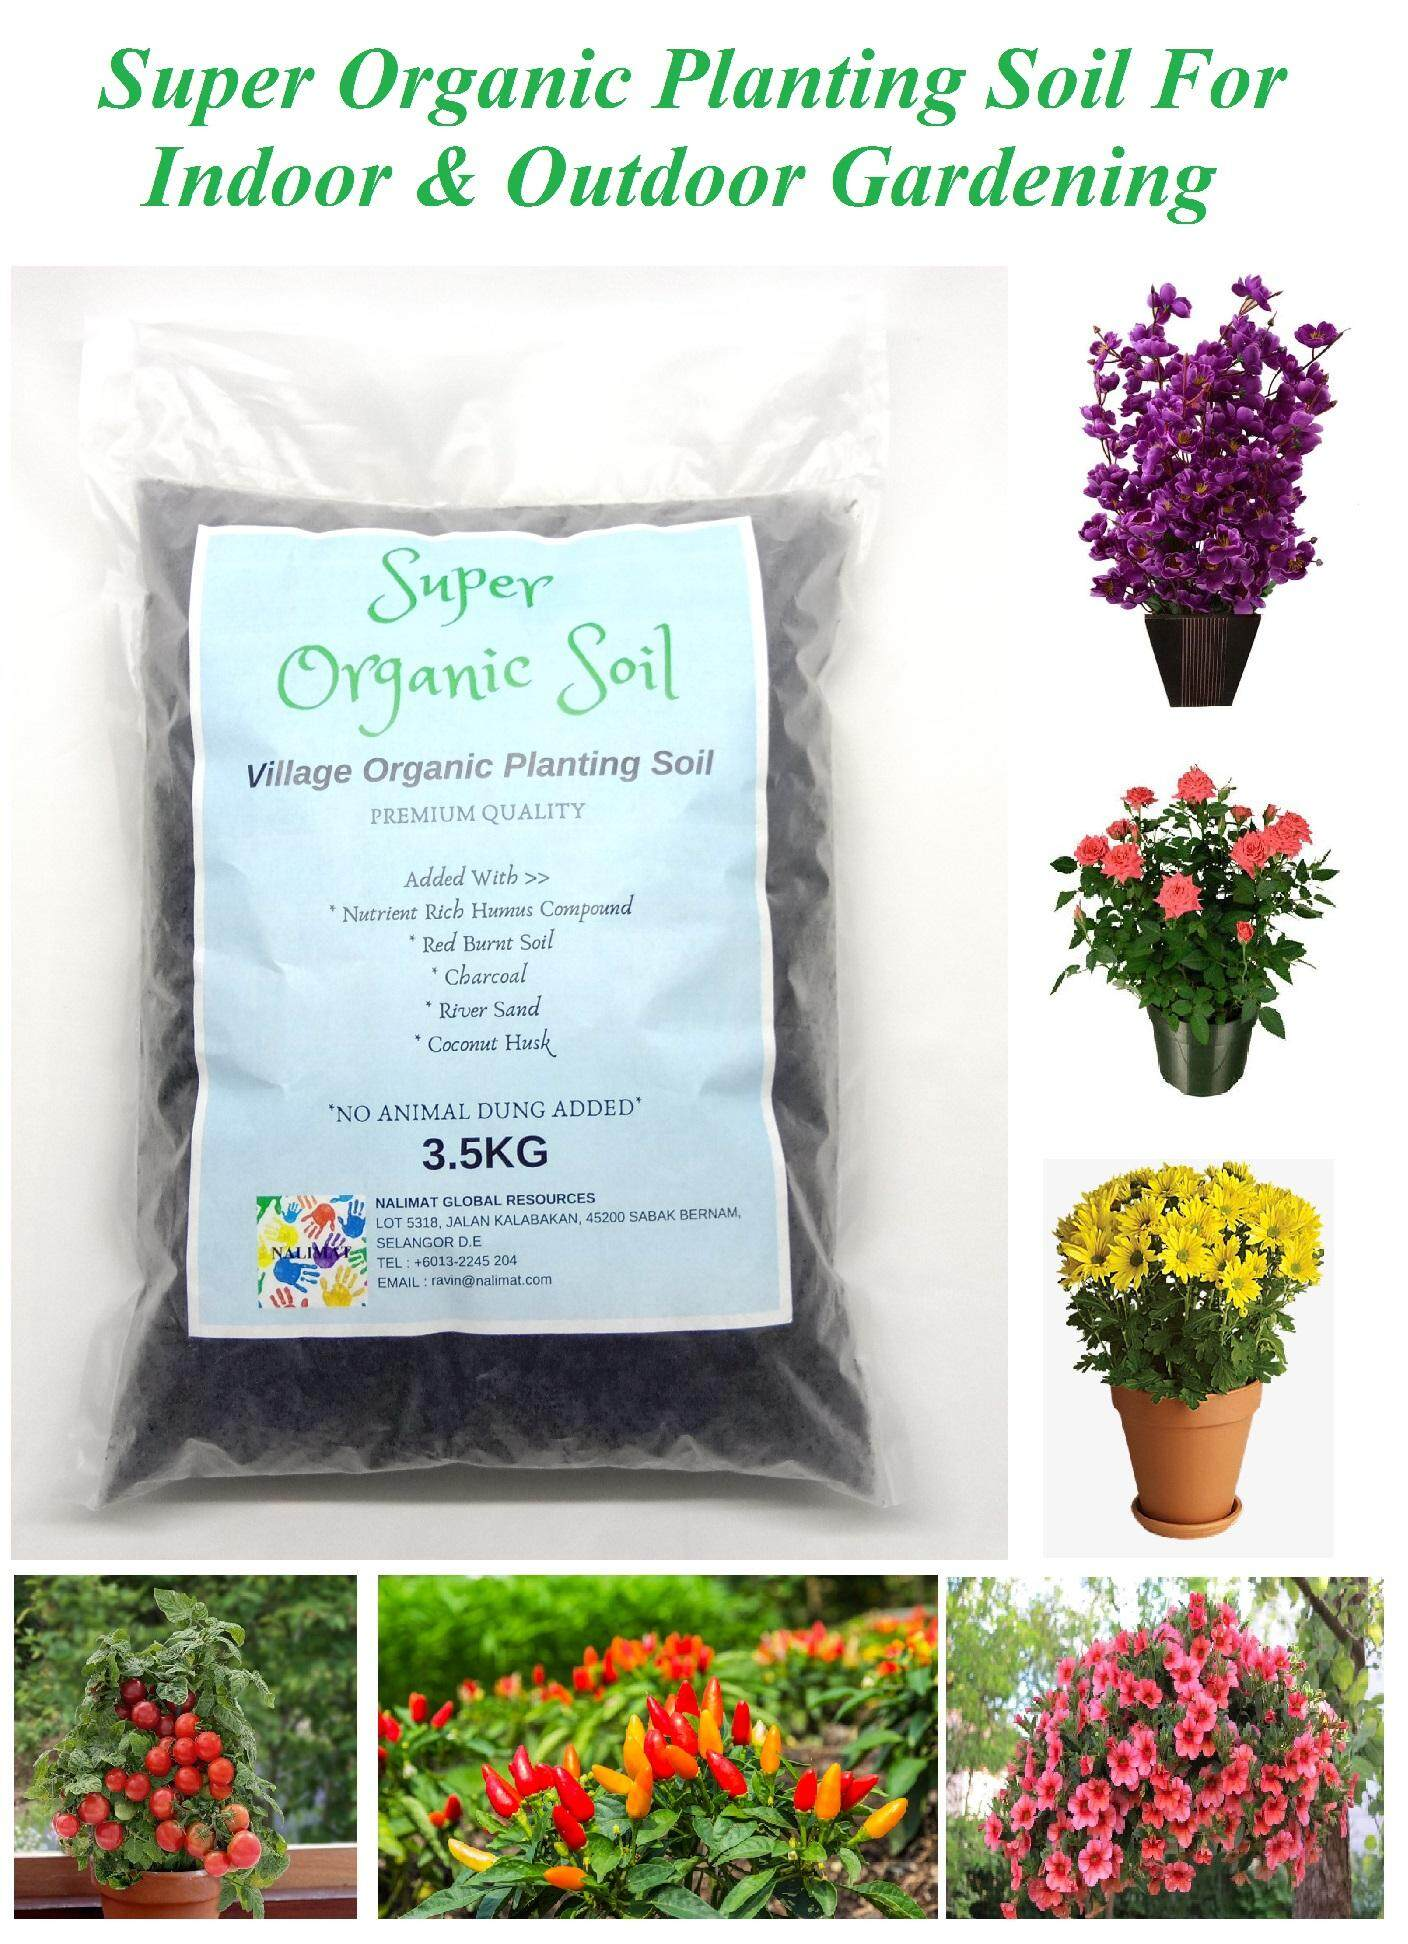 Super Organic Planting Soil For Indoor And Outdoor Gardening